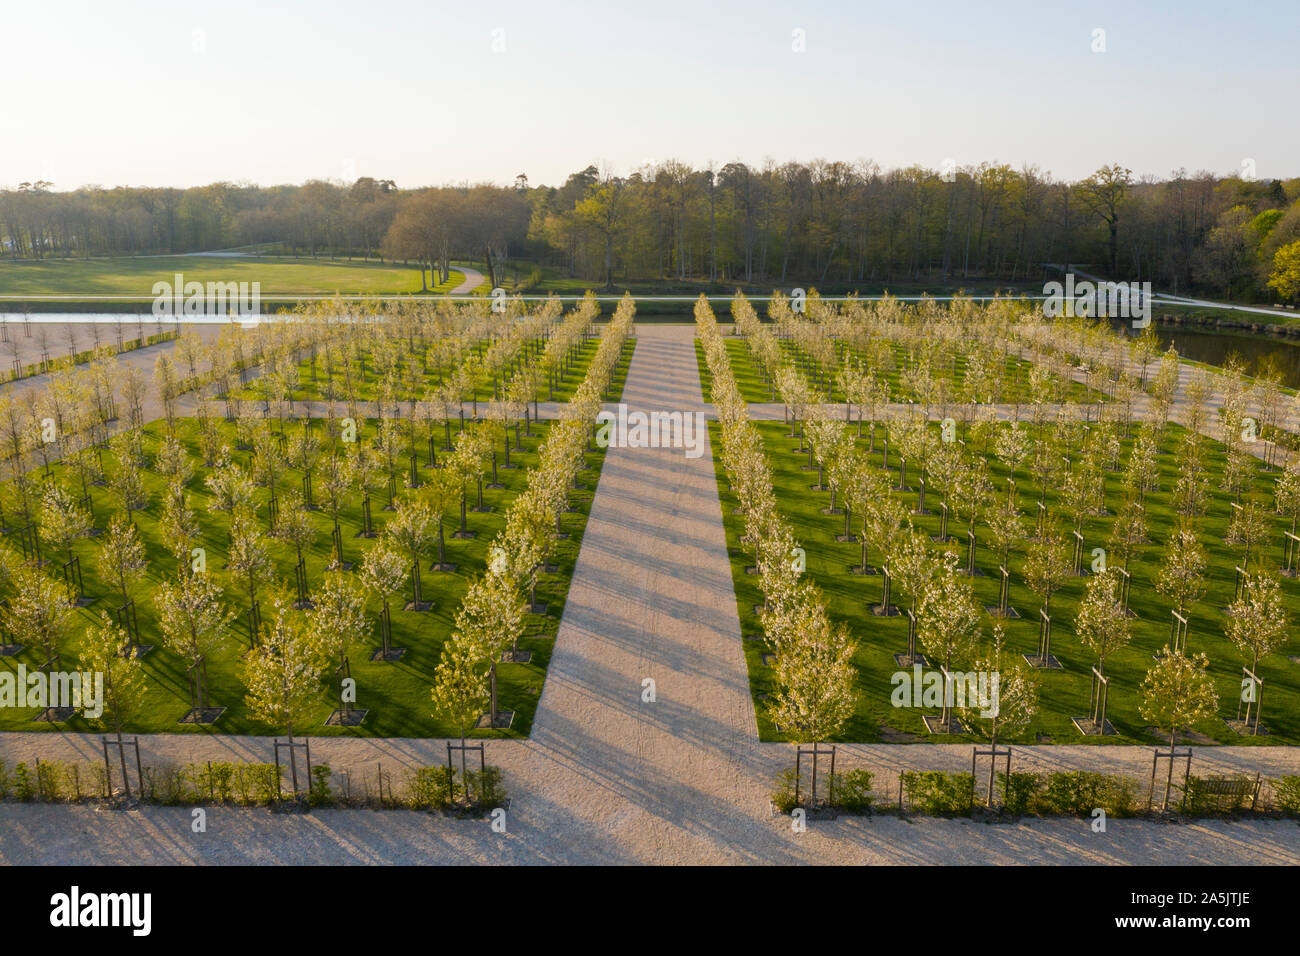 France, Loir et Cher, Loire Valley listed as World Heritage by UNESCO, Chambord, royal castle, the French gardens, planting of double-flowered wild ch Stock Photo